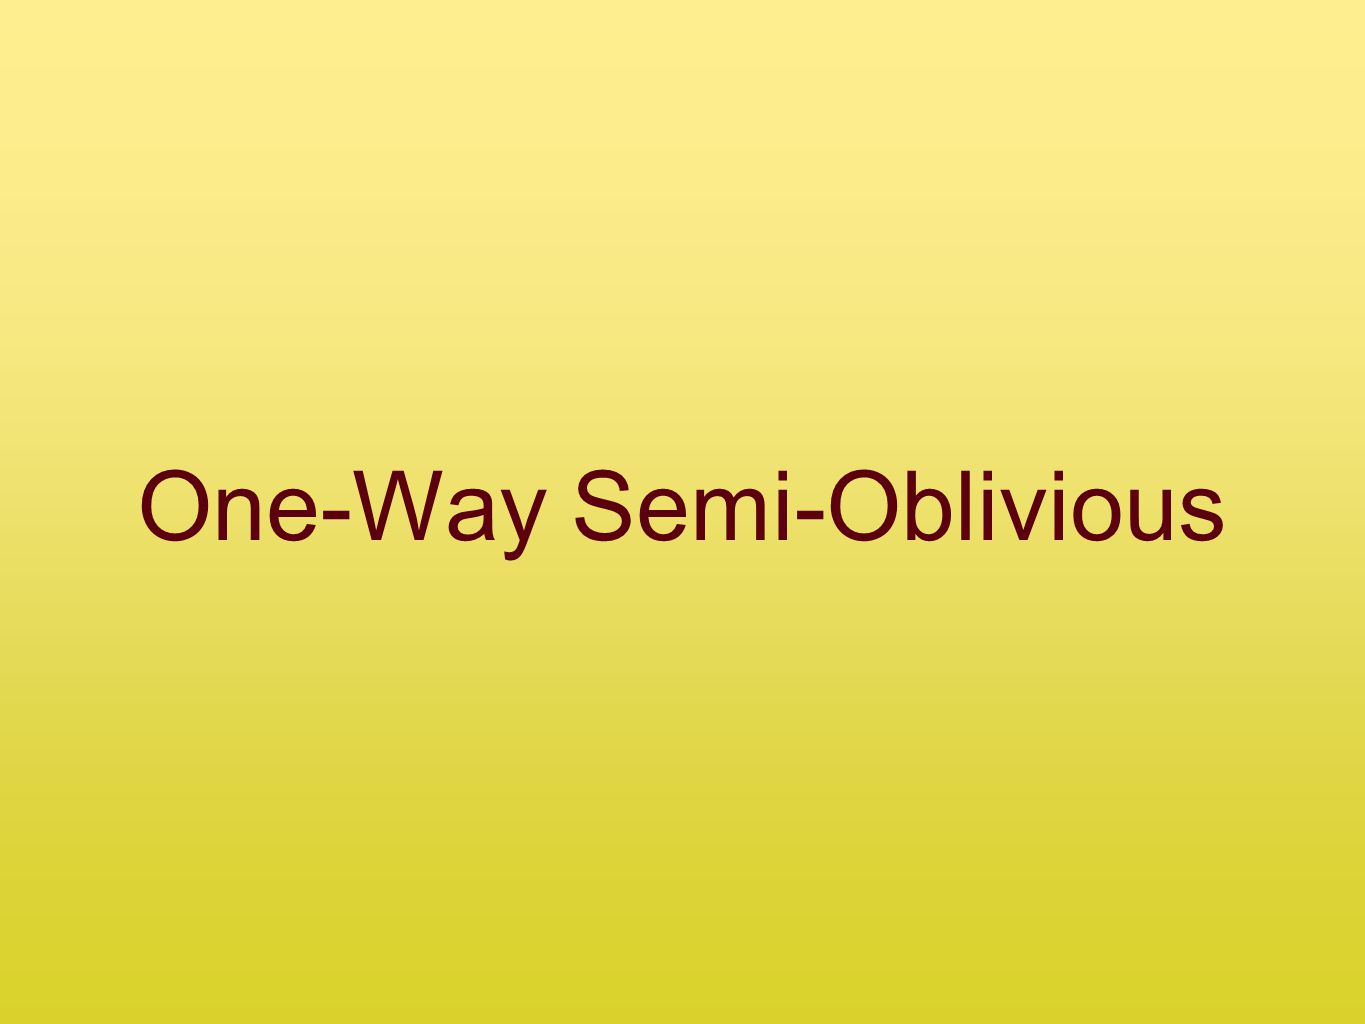 One-Way Semi-Oblivious